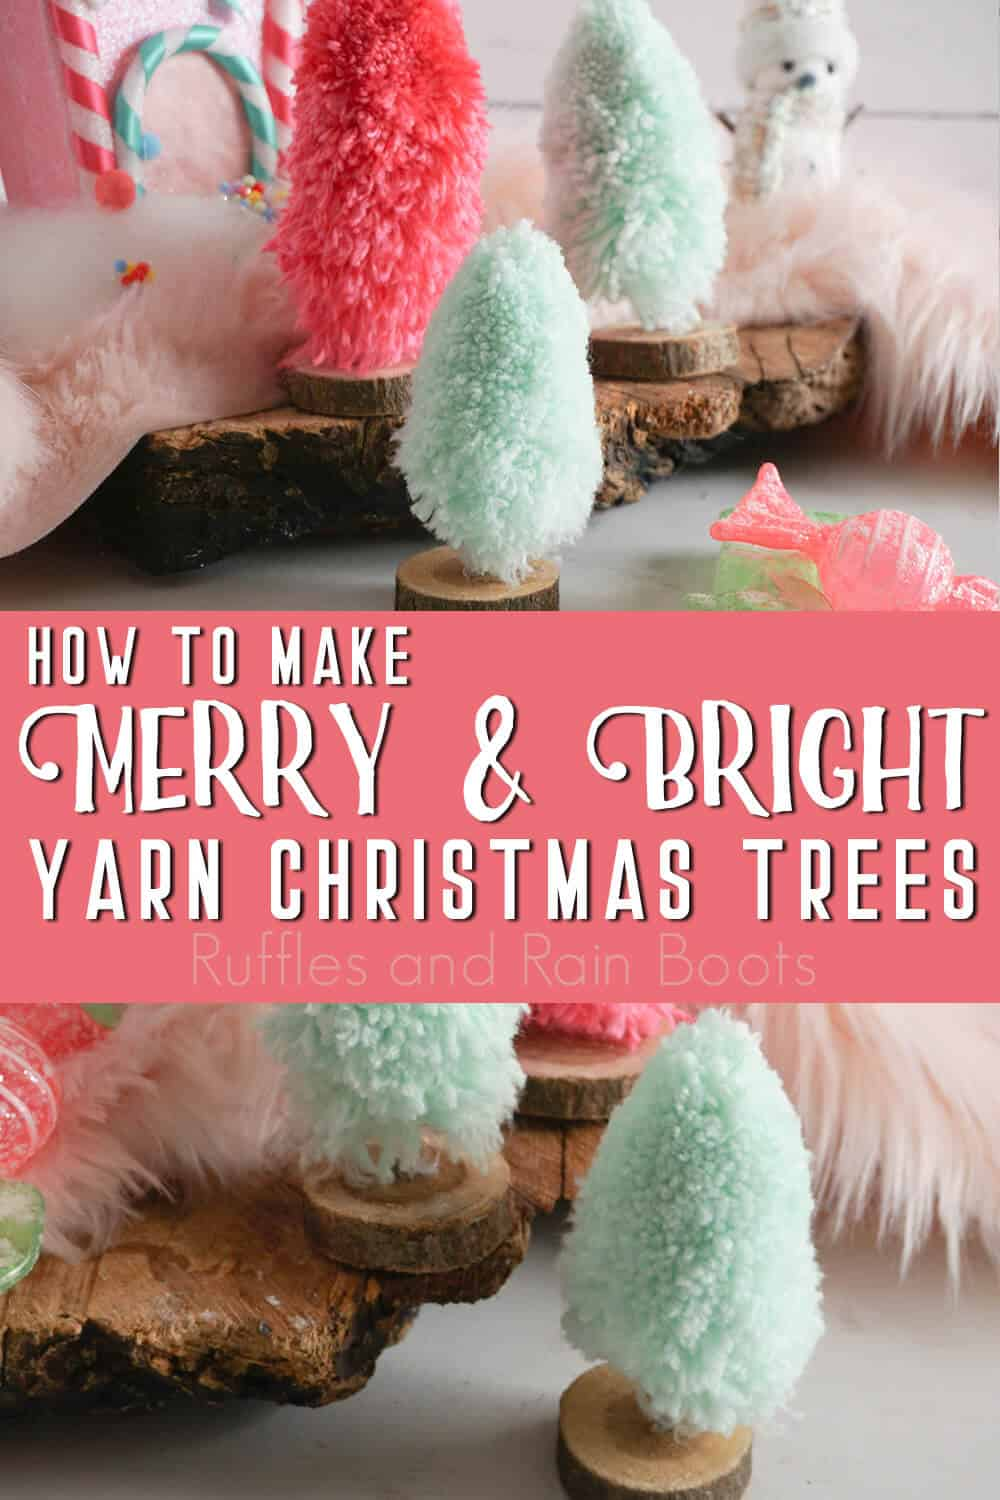 photo collage of yarn tree alternative to bottlebrush trees with text which reads how to make merry & bright yarn christmas trees